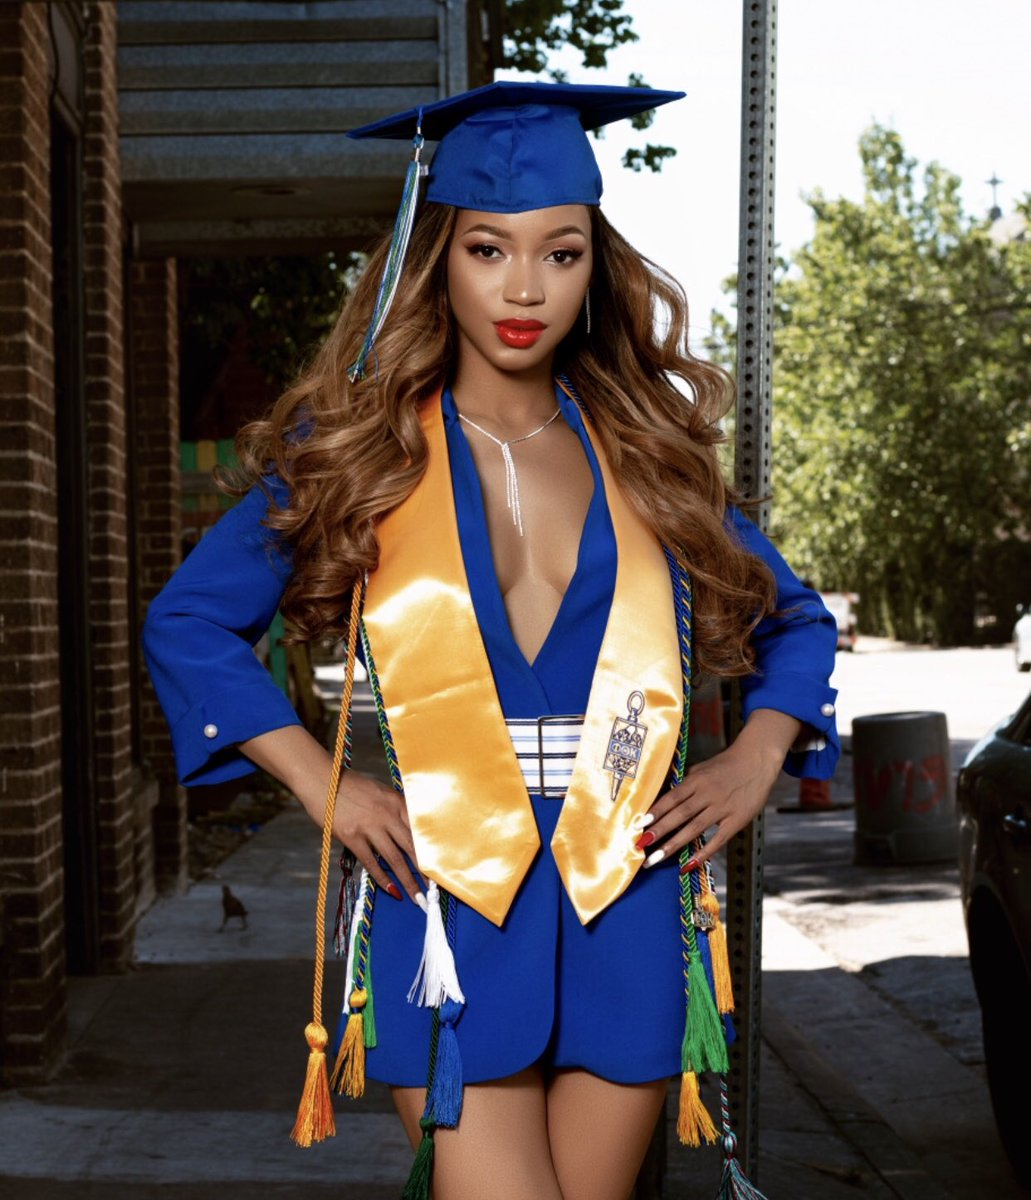 Kia Moore - Graduate of University of Dallas   Major: Biology